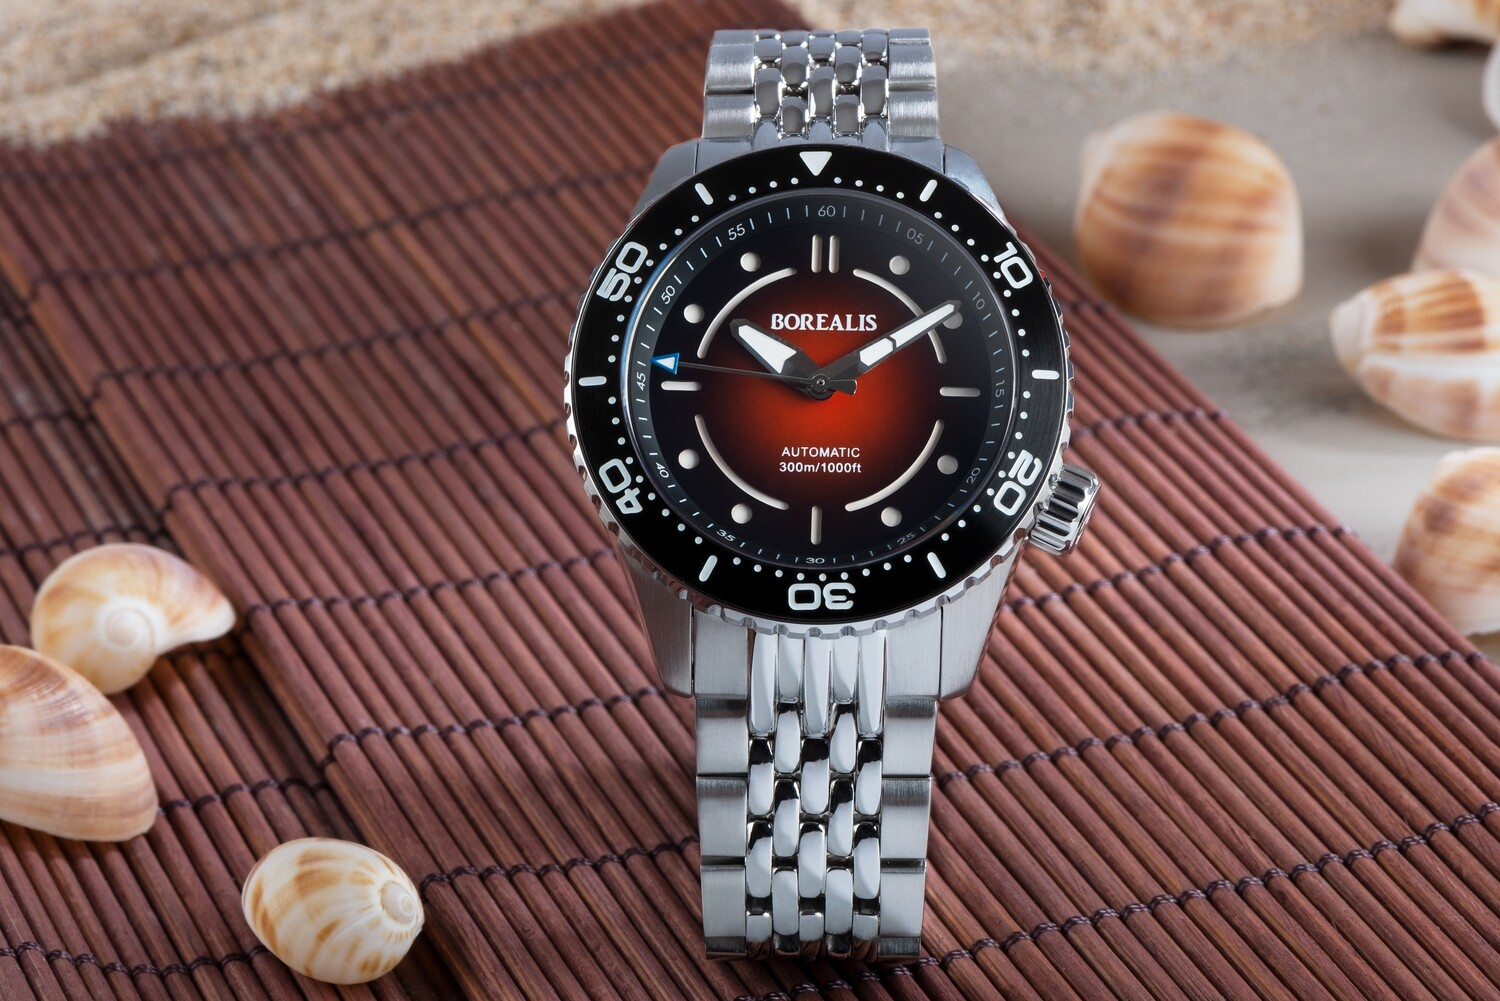 Pre-Order Borealis Neptuno Red Fade to Black Dial No Date NH38 Automatic Movement 300m Diver Watch